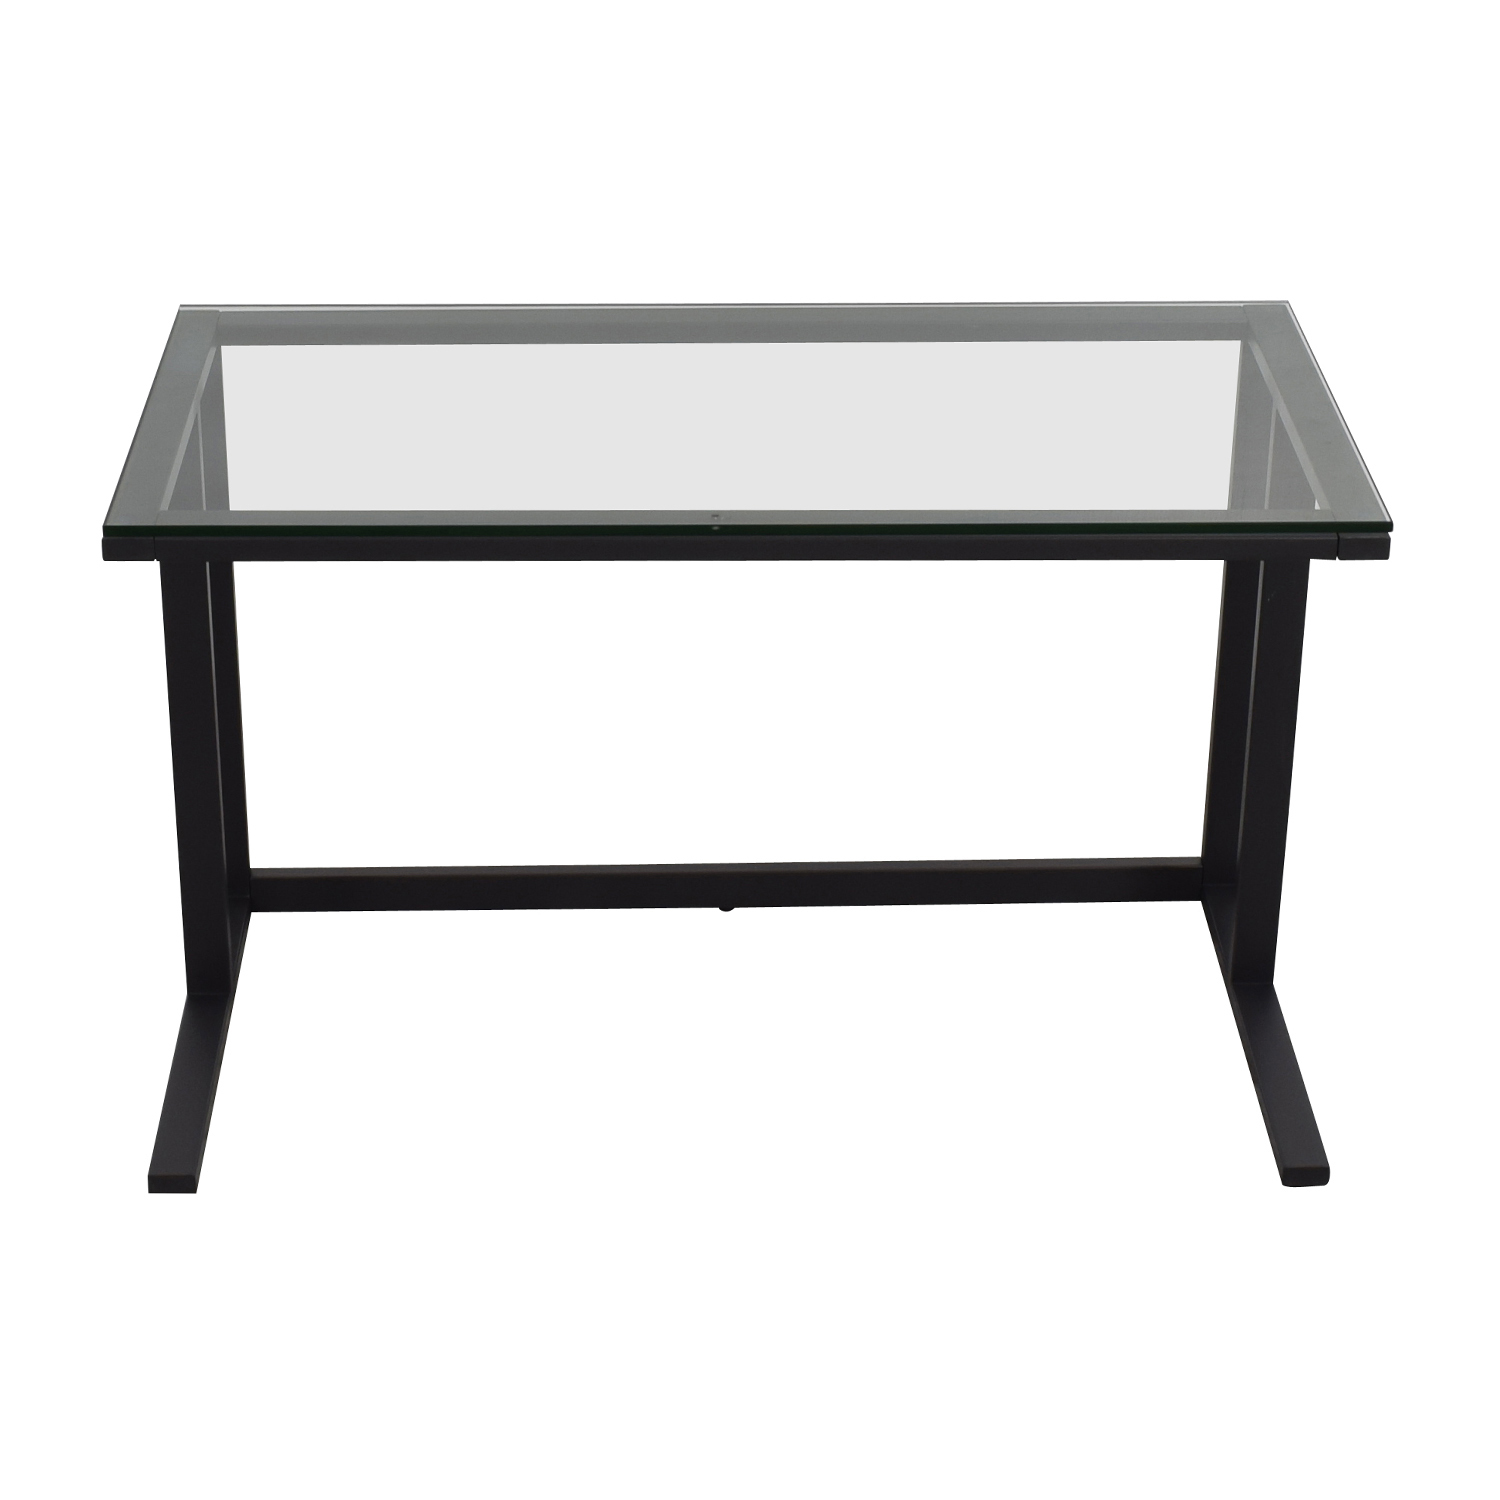 Crate & Barrel Pilsen Desk Graphite Grey Crate & Barrel